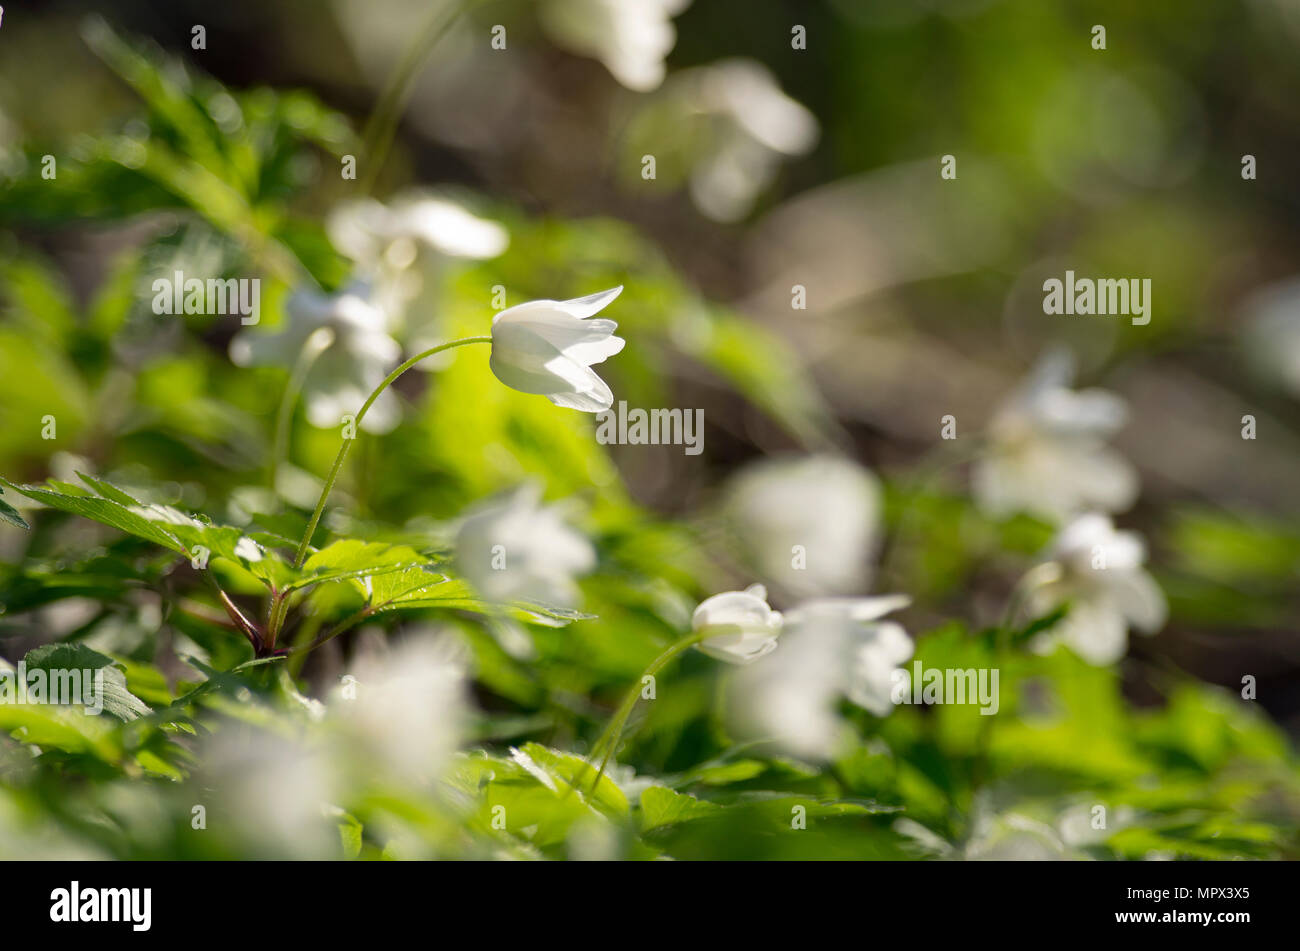 Buds of an anemony are dismissed on a meeting to the spring sun. Stock Photo